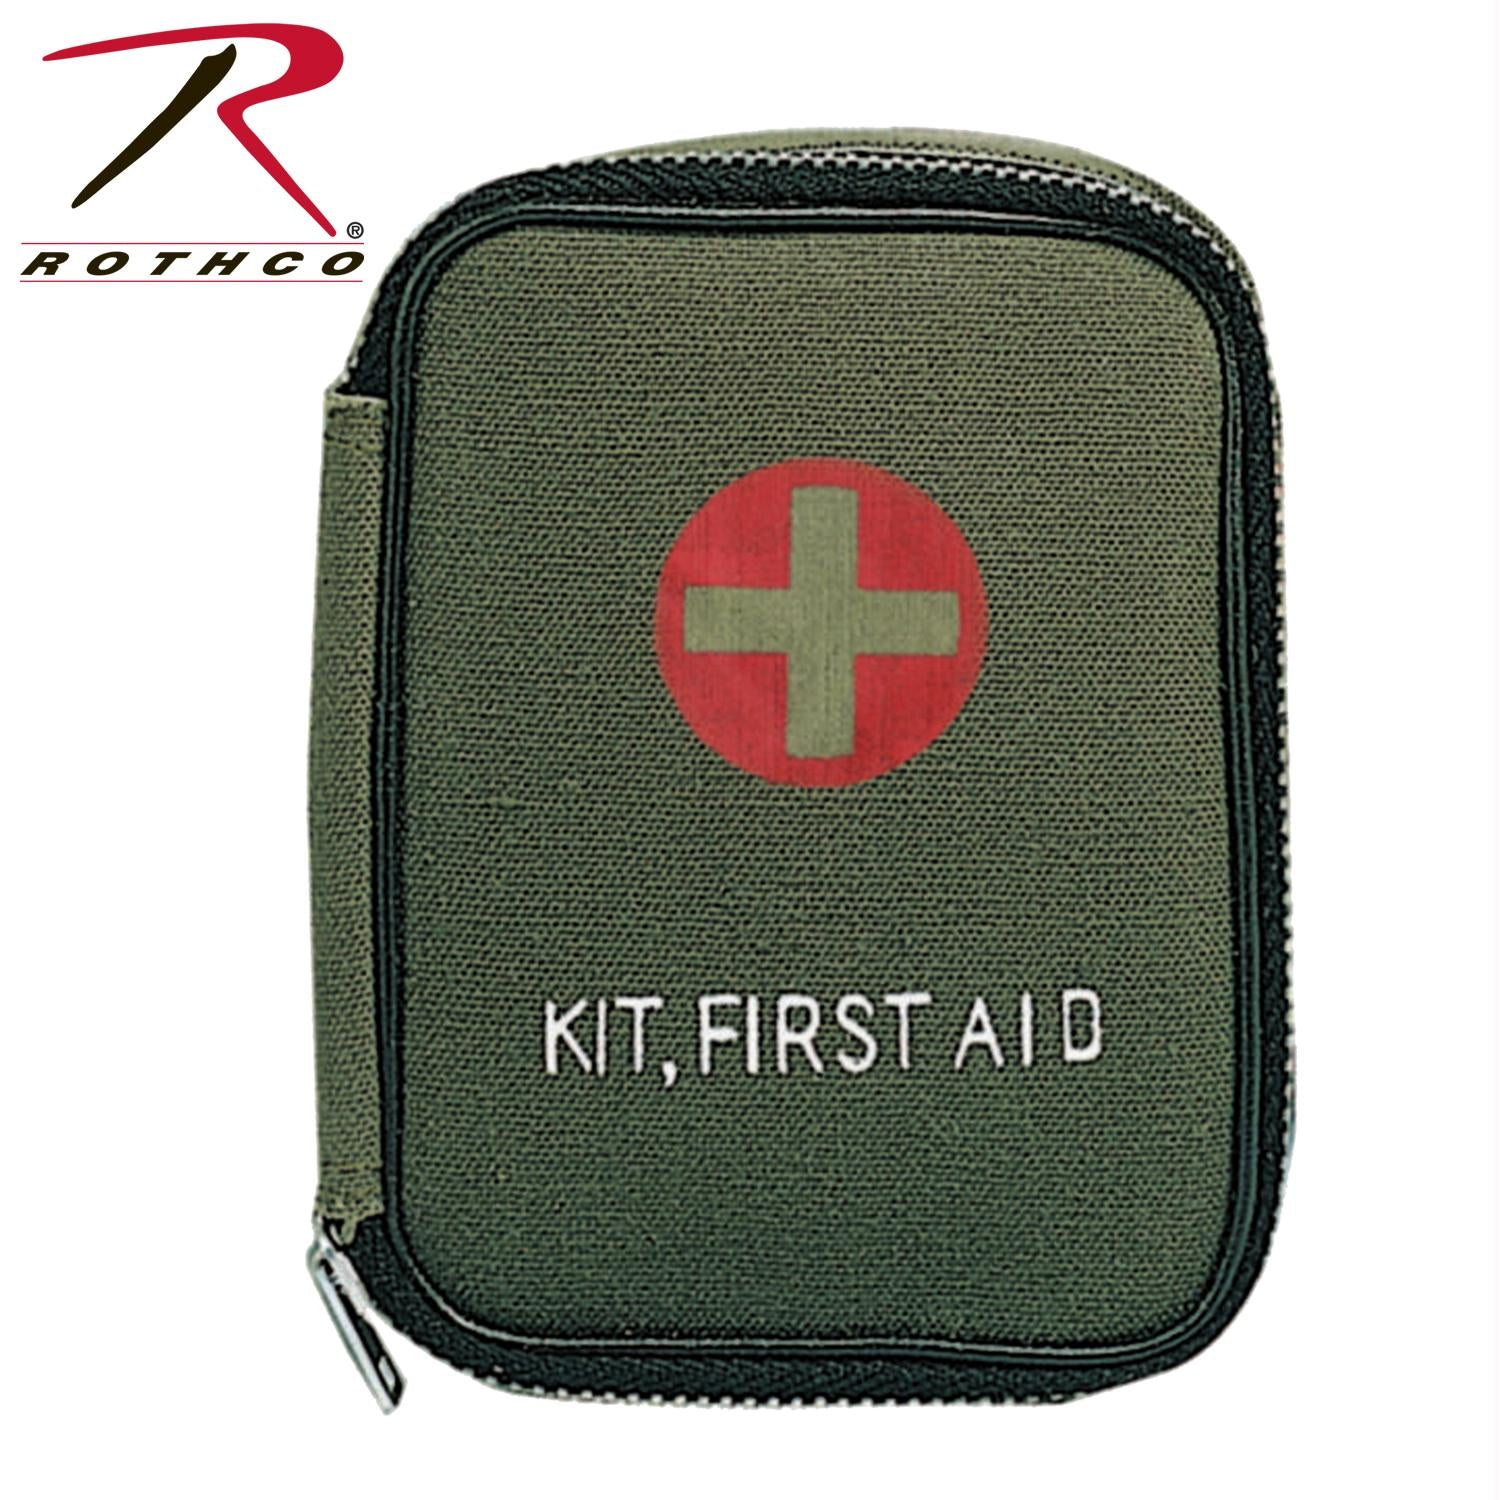 Rothco Military Zipper First Aid Kit Pouch - Olive Drab